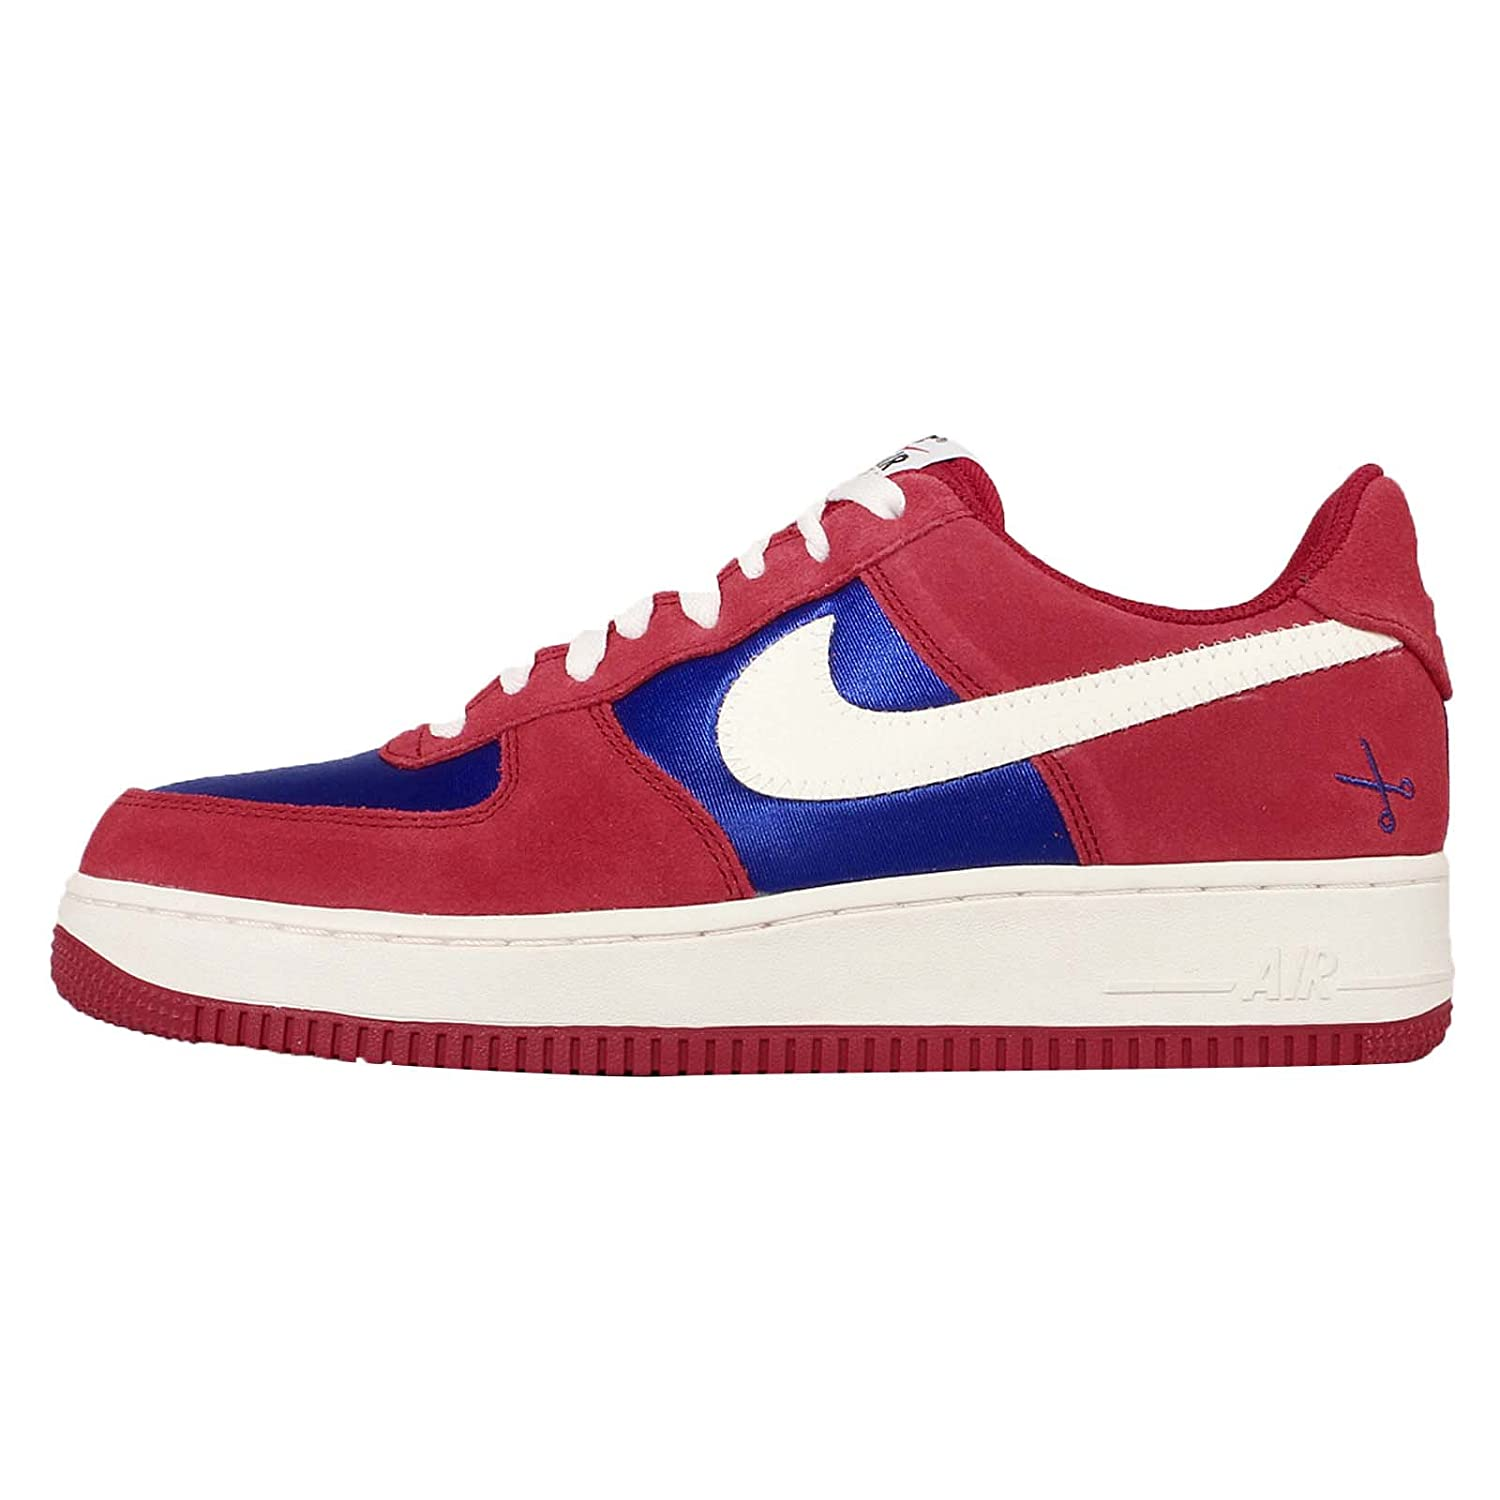 Nike Air Force 1 Red Suede Trainers With Gum Sole